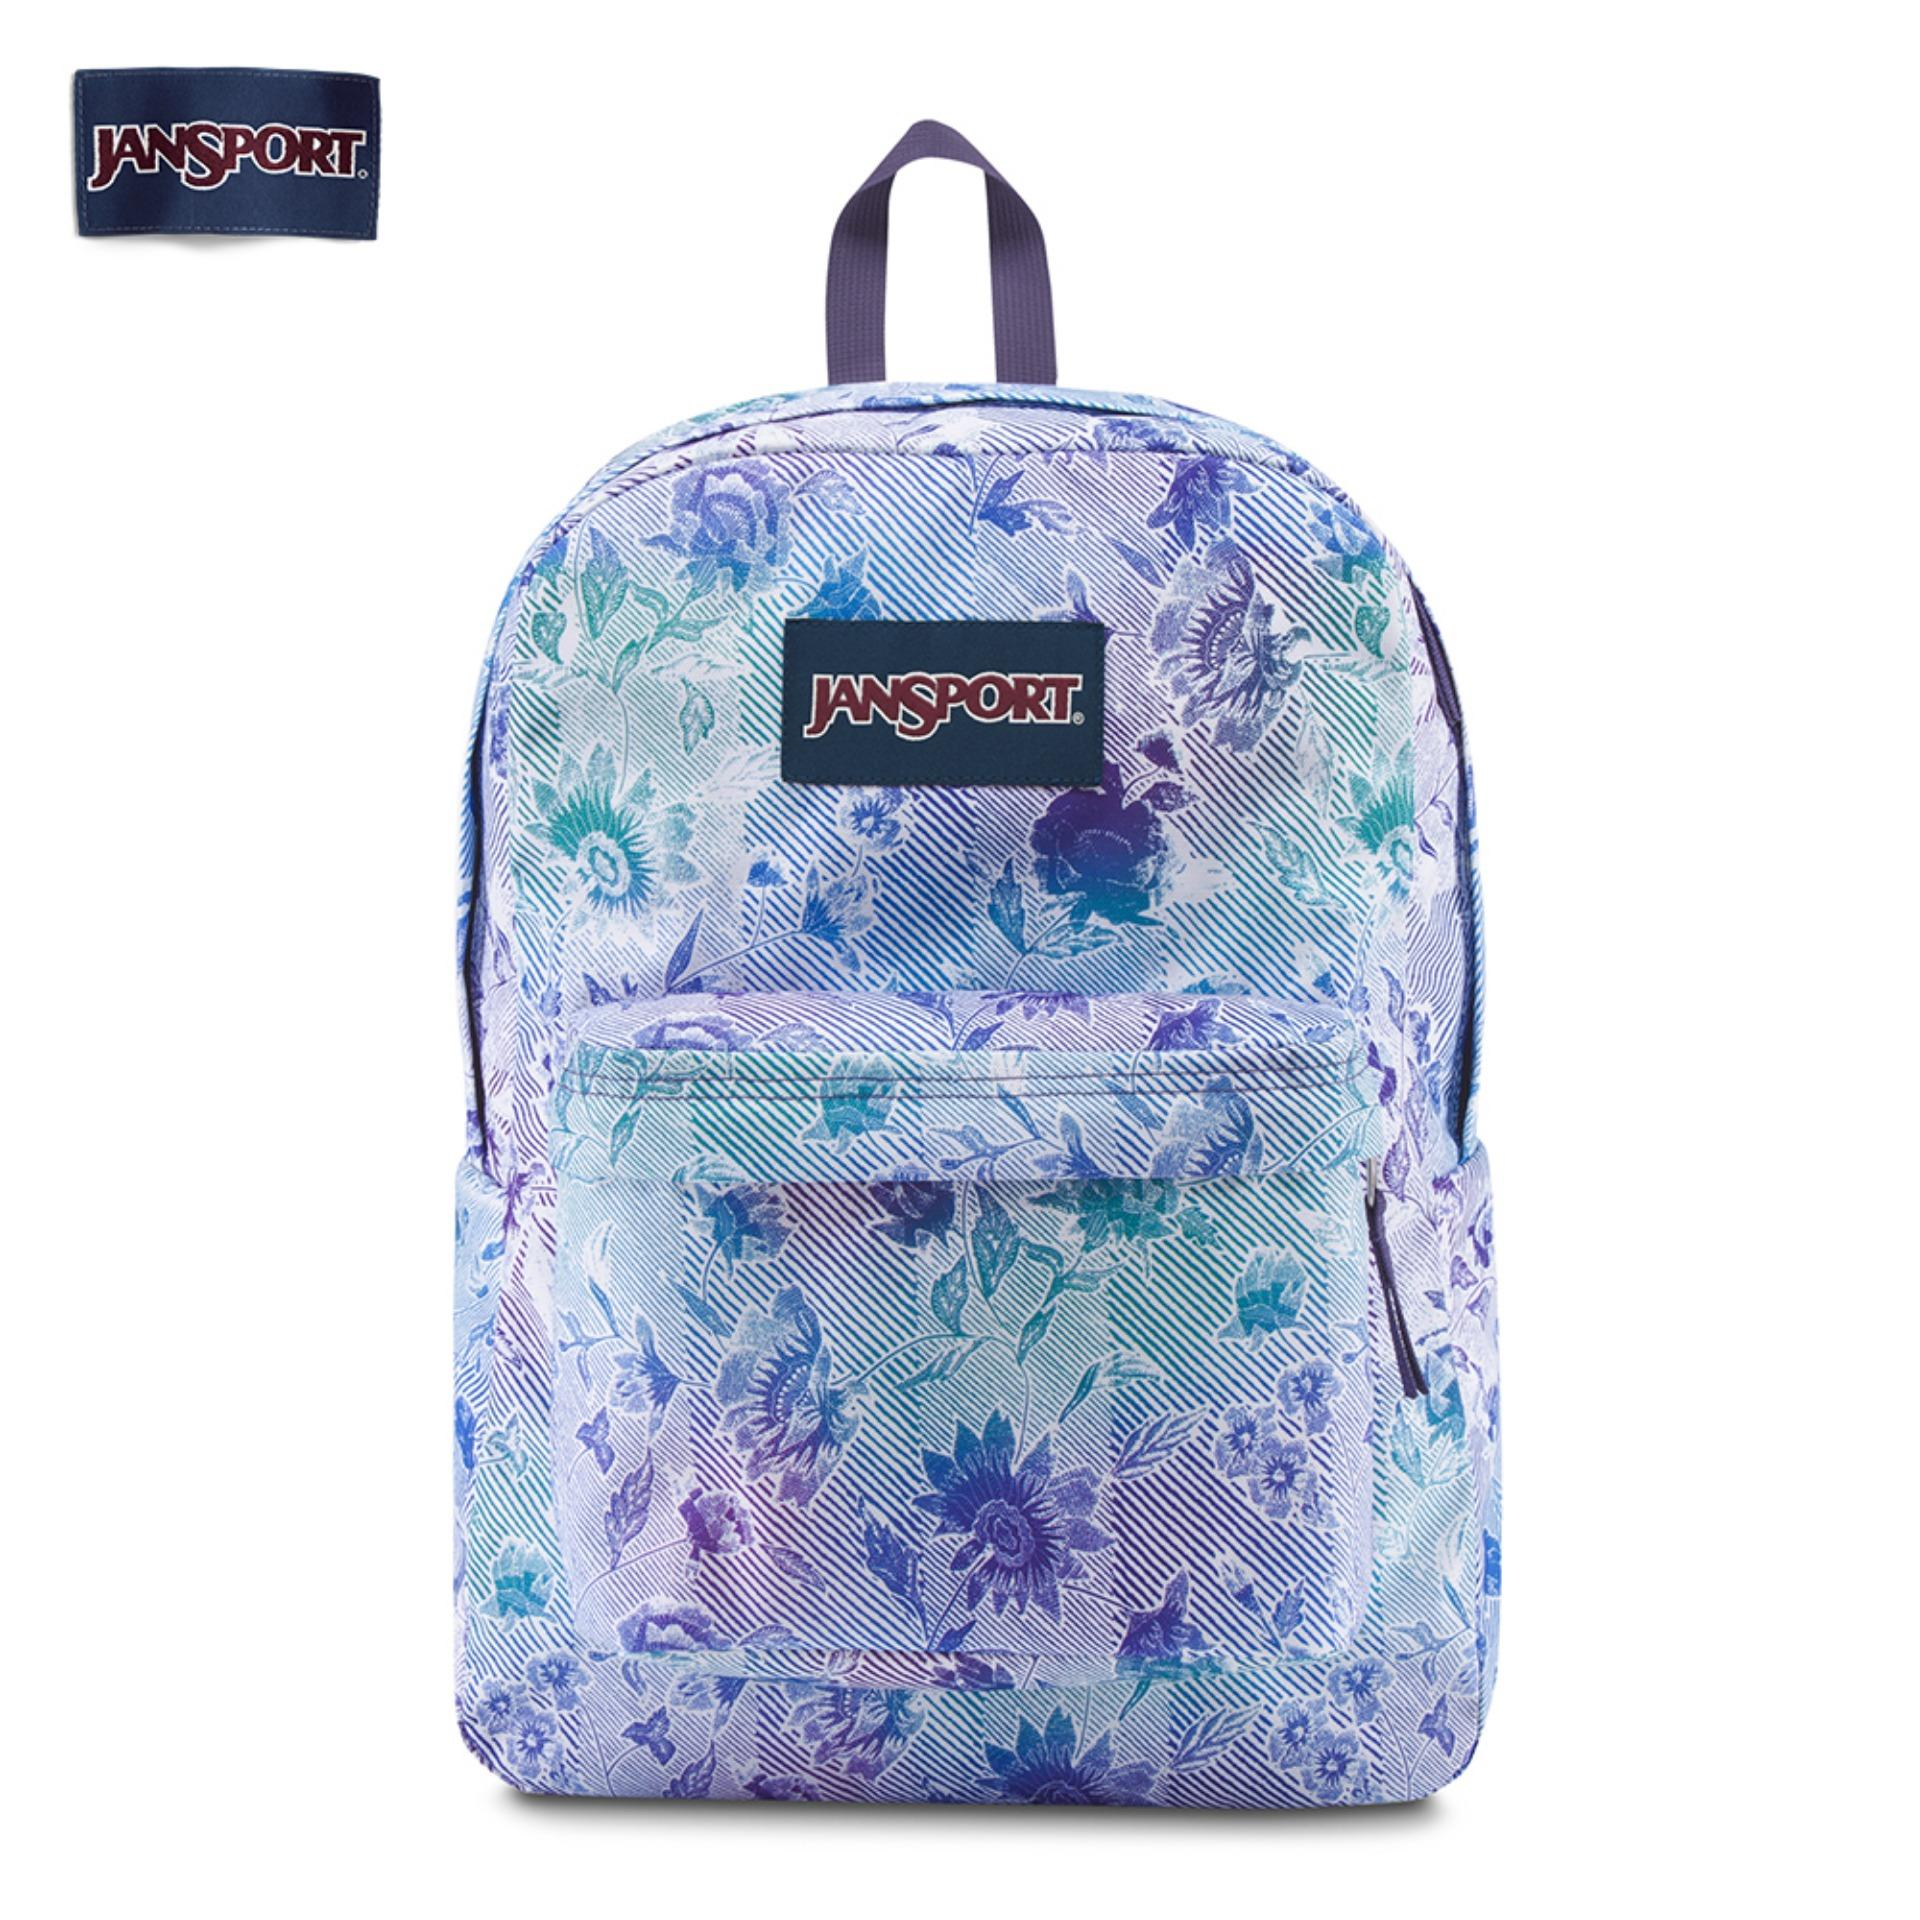 4e5839966 JanSport Philippines: JanSport price list - JanSport Bags ...